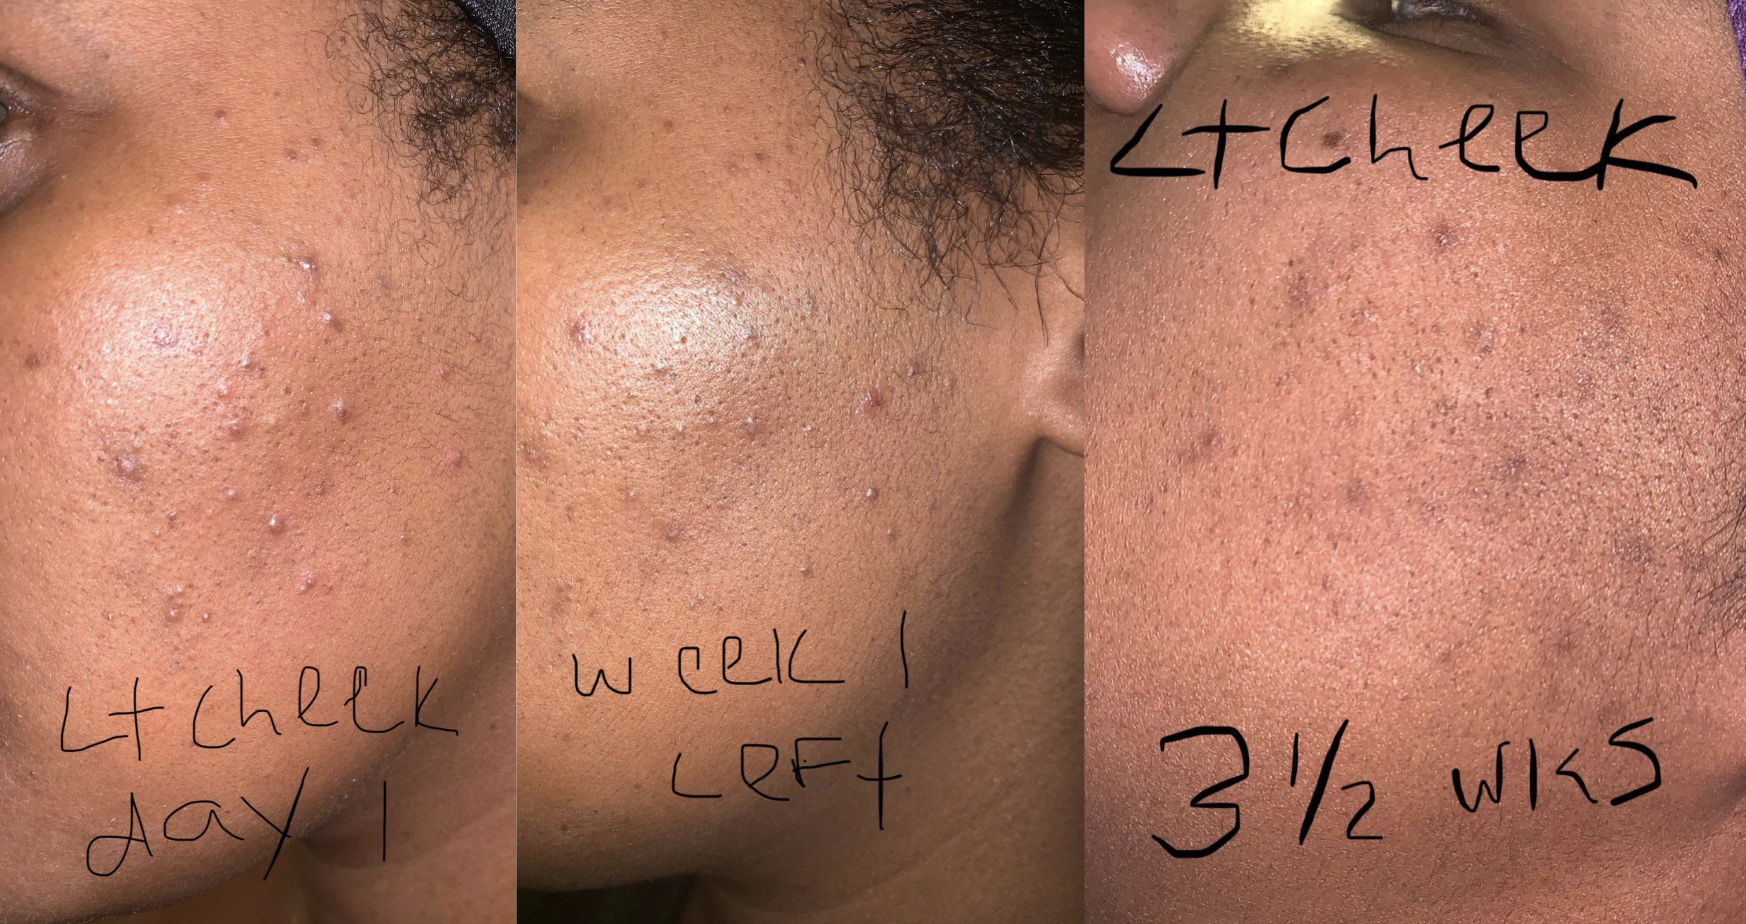 before and after photo of reviewer with visible scarring on left and less scarring on right